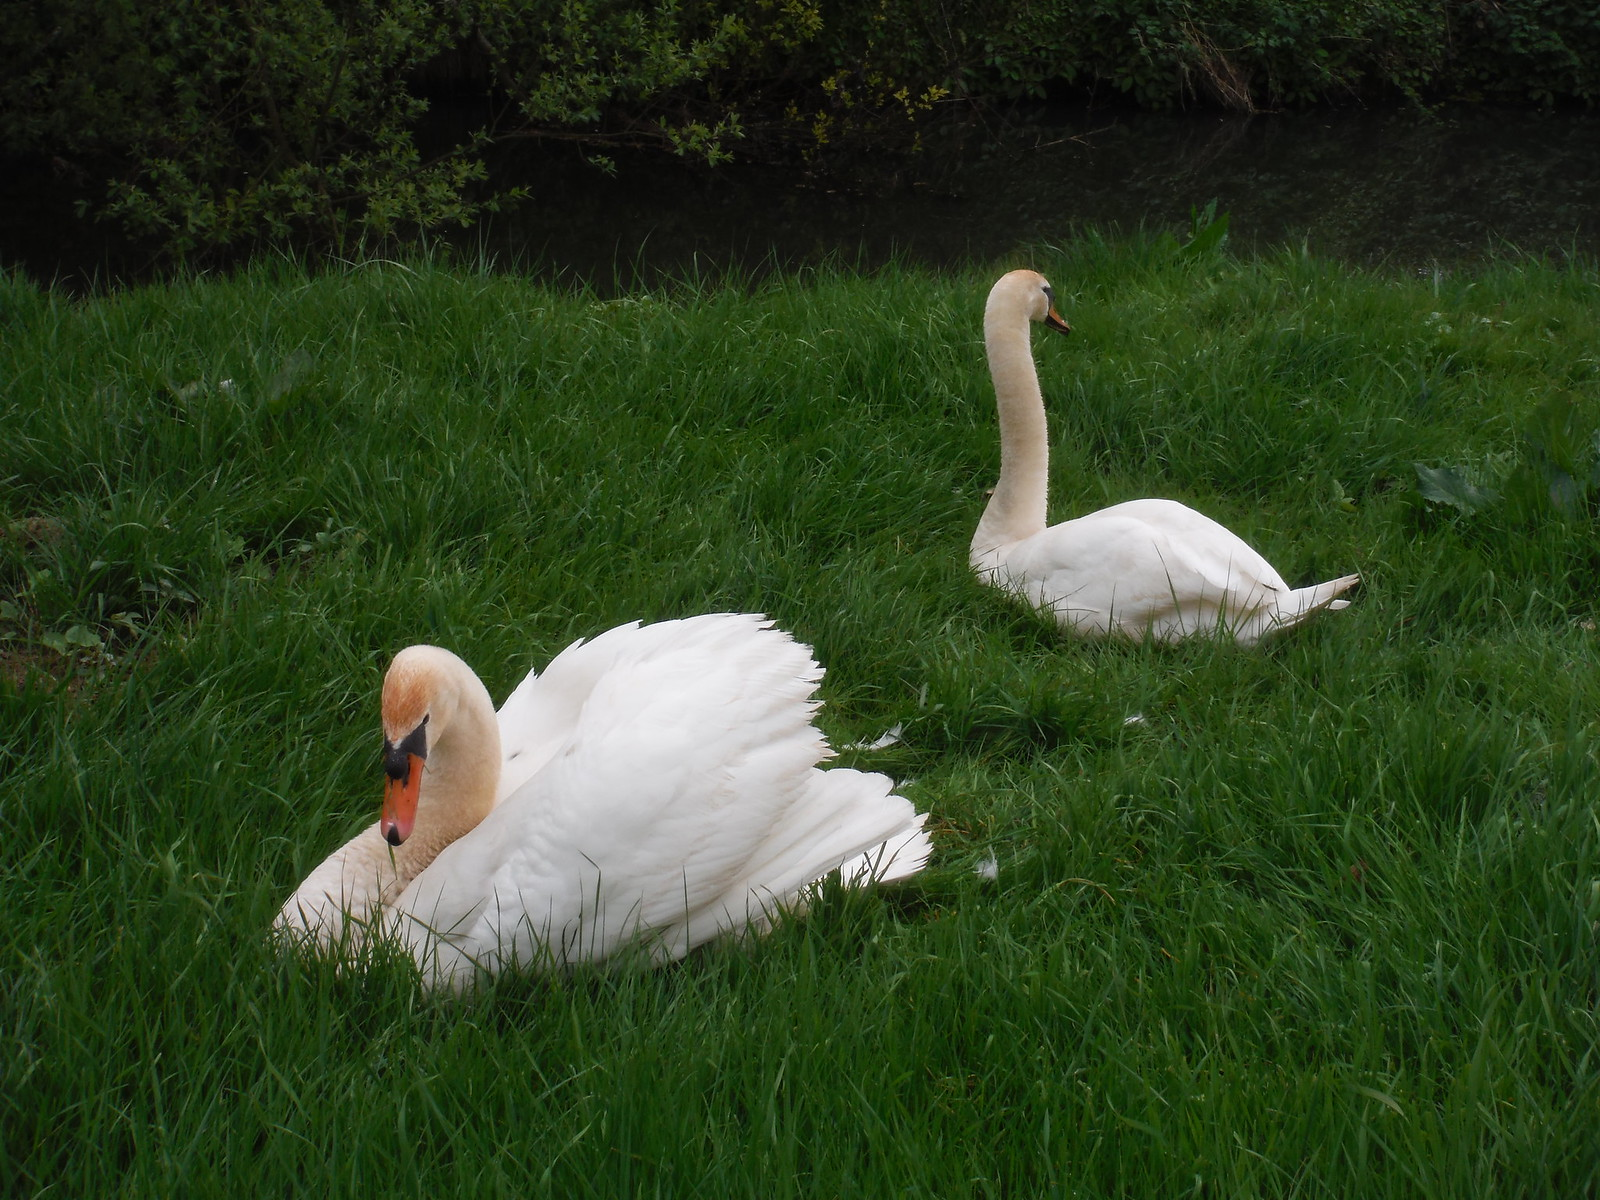 Swans by the River Uck SWC Walk 272 Uckfield to Lewes